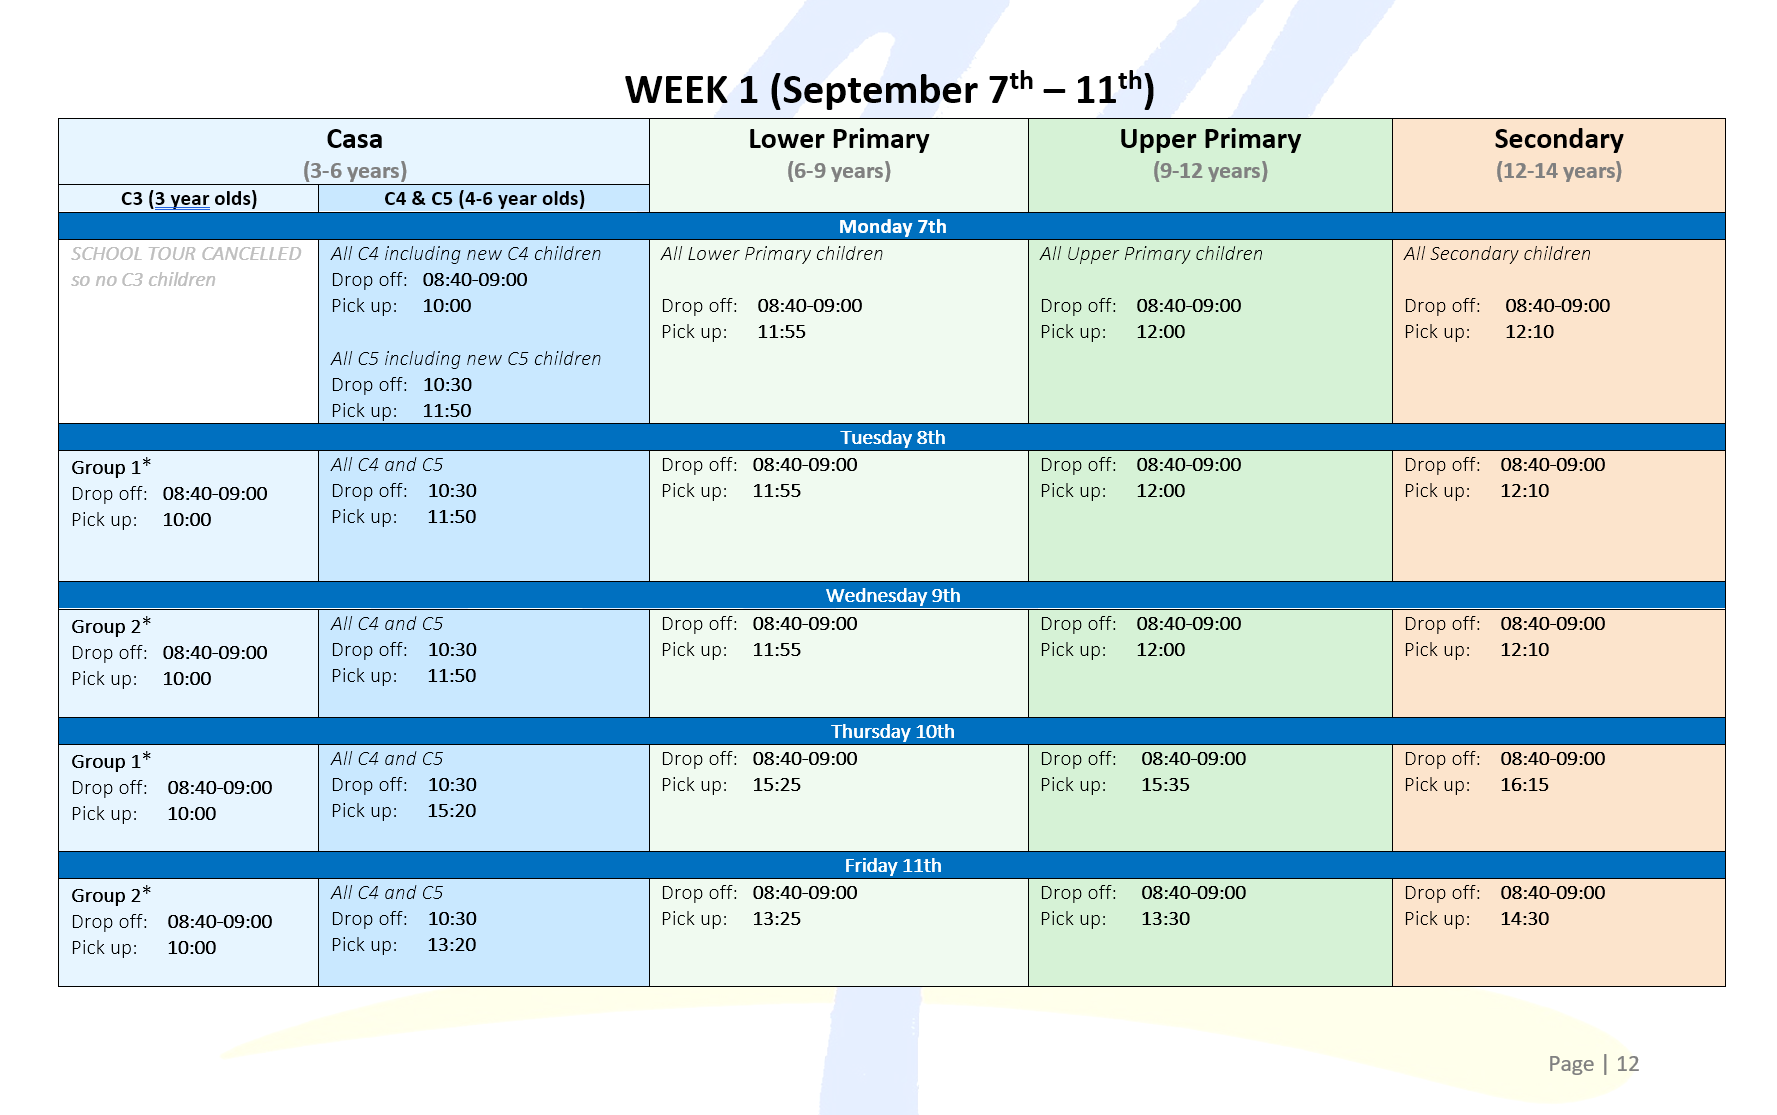 Illustration of time table for wee 1